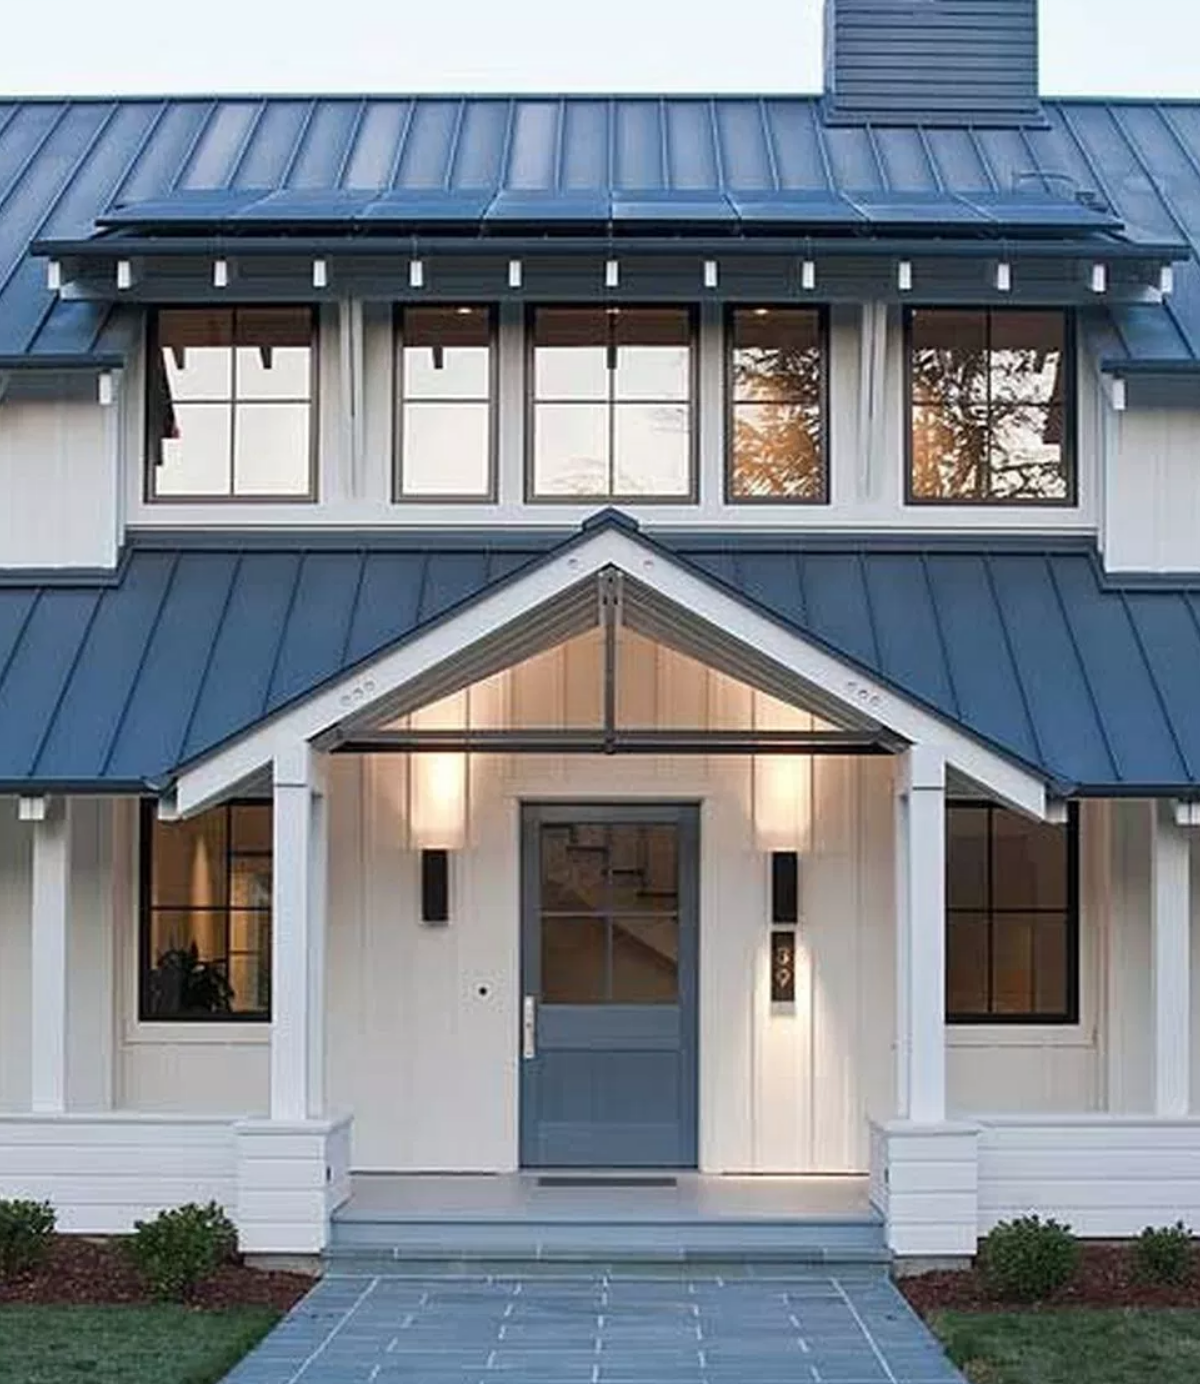 90 Incredible Modern Farmhouse Exterior Design Ideas 63: Like The Entry And Multiple Roofs Lines